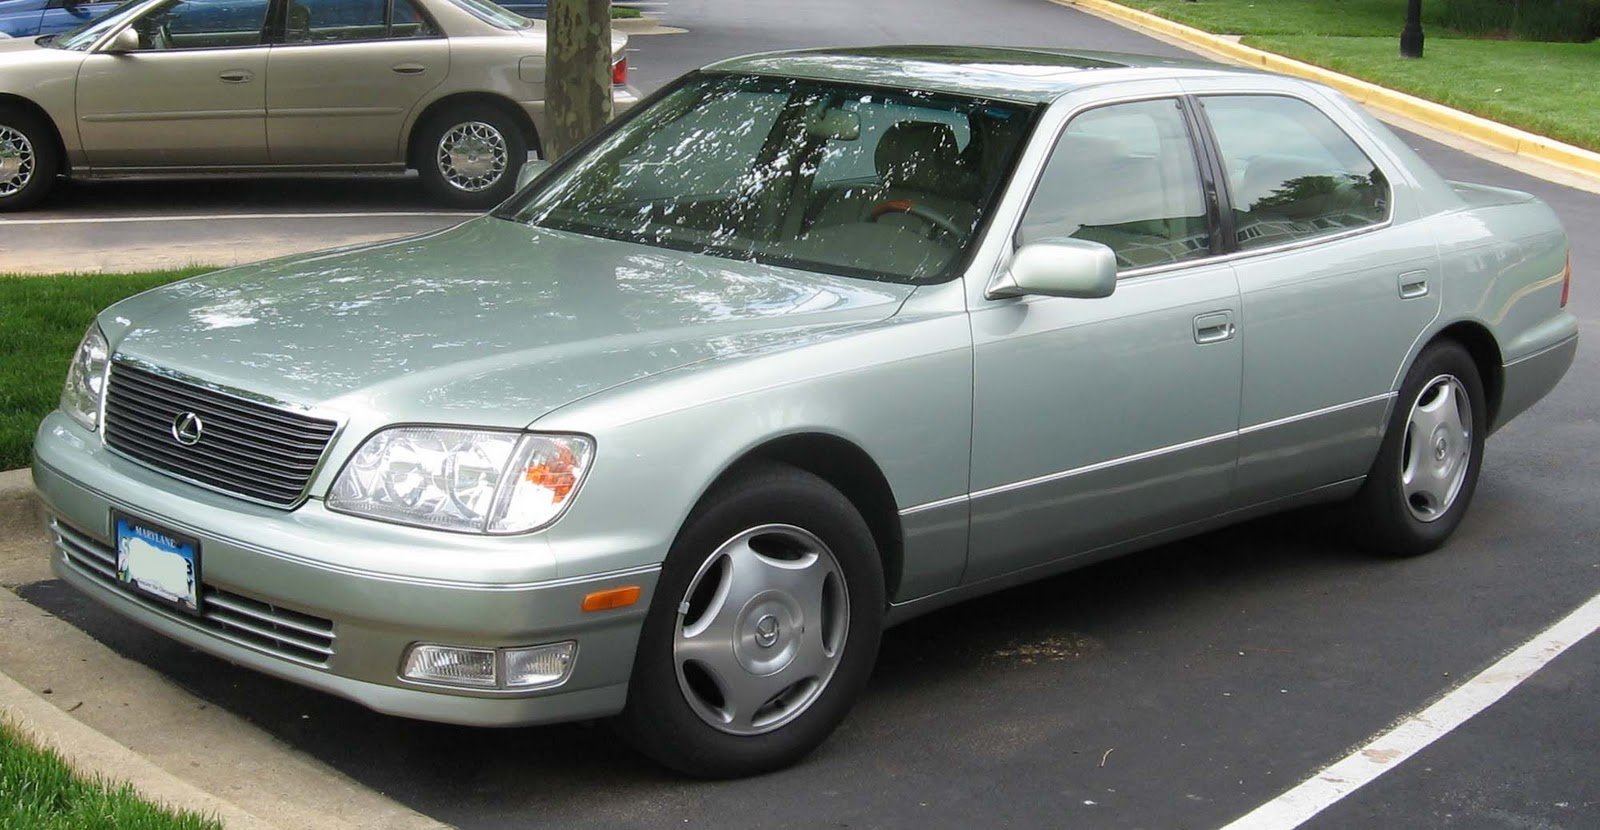 Download full workshop manual for 2000 Lexus LS400. This workshop manual is  in zip format and upon extraction gives 21 different folders containing PDF  ...